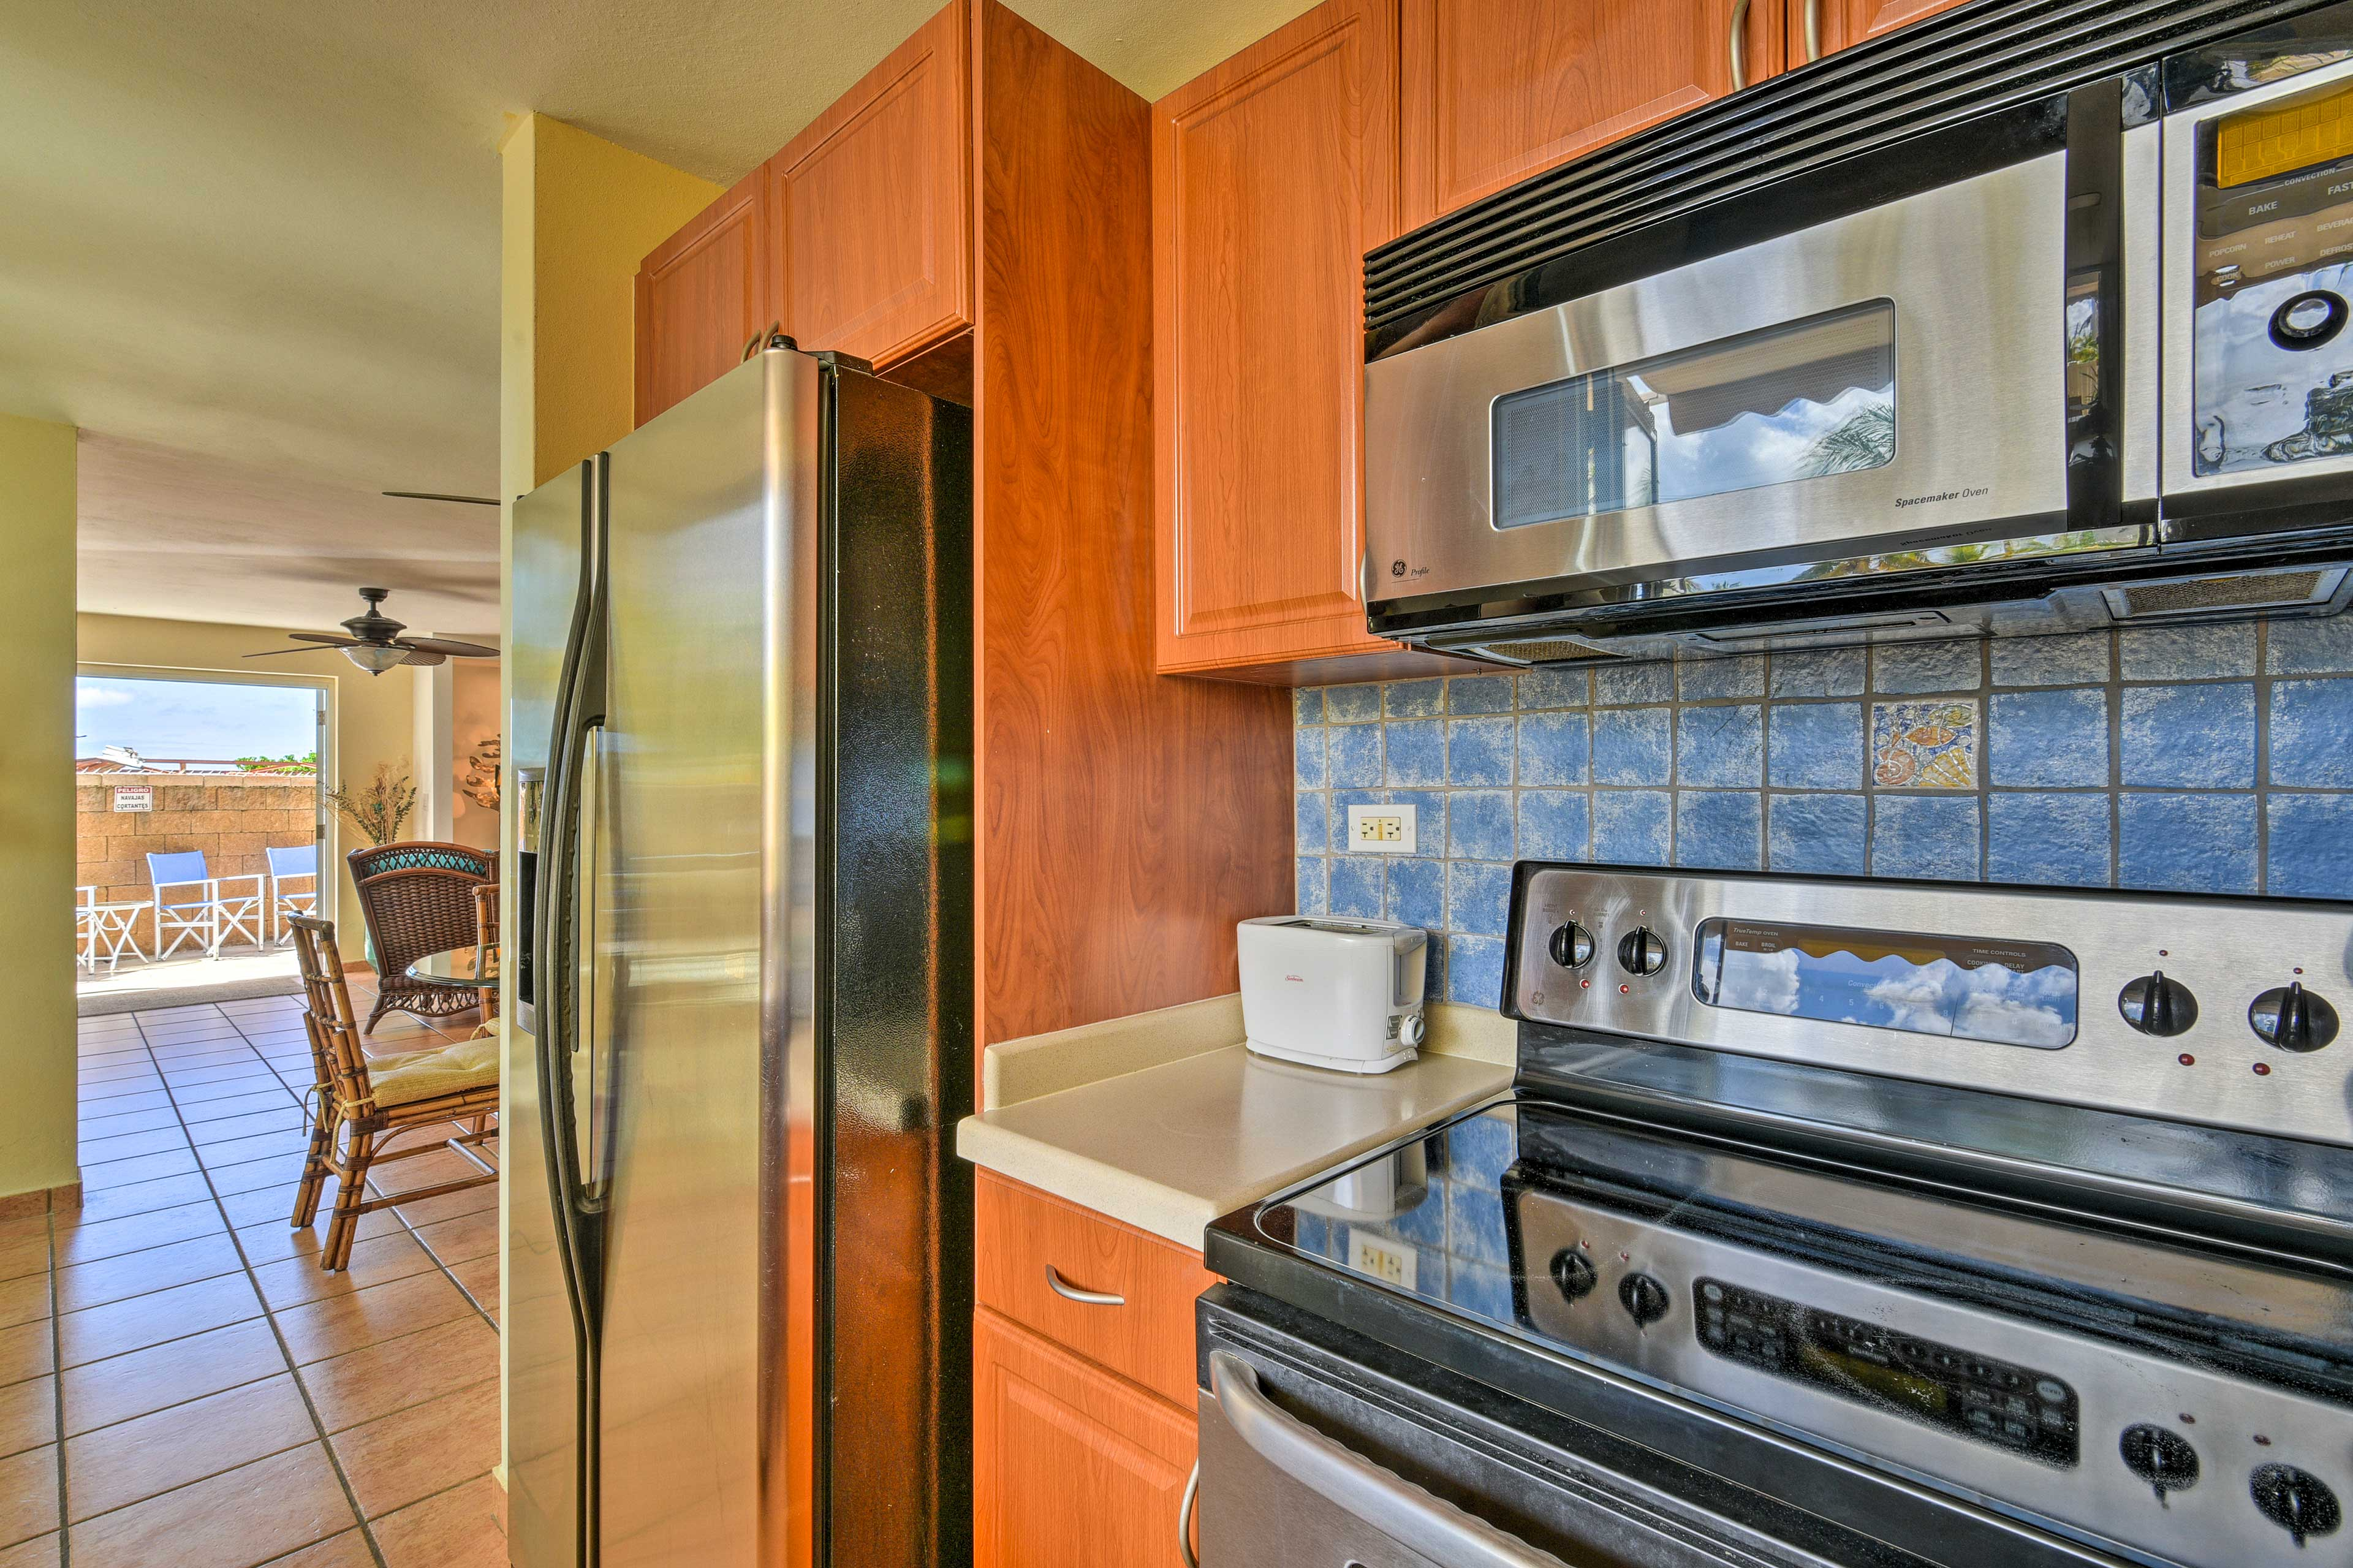 Stainless steel appliances make cooking at home a breeze.